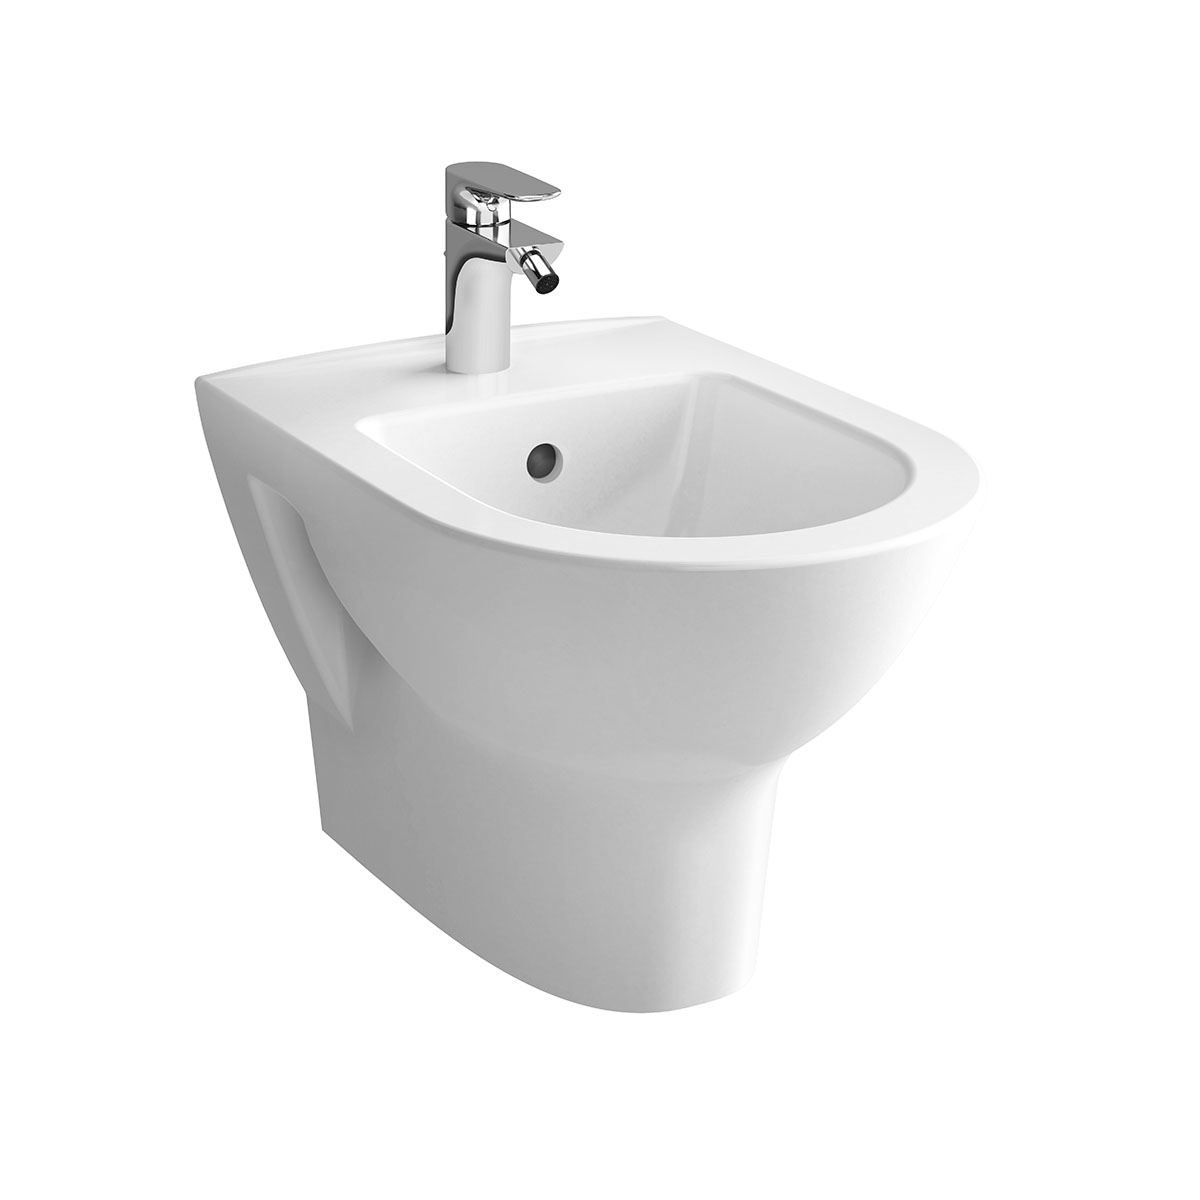 click on Wall Hung Bidet image to enlarge